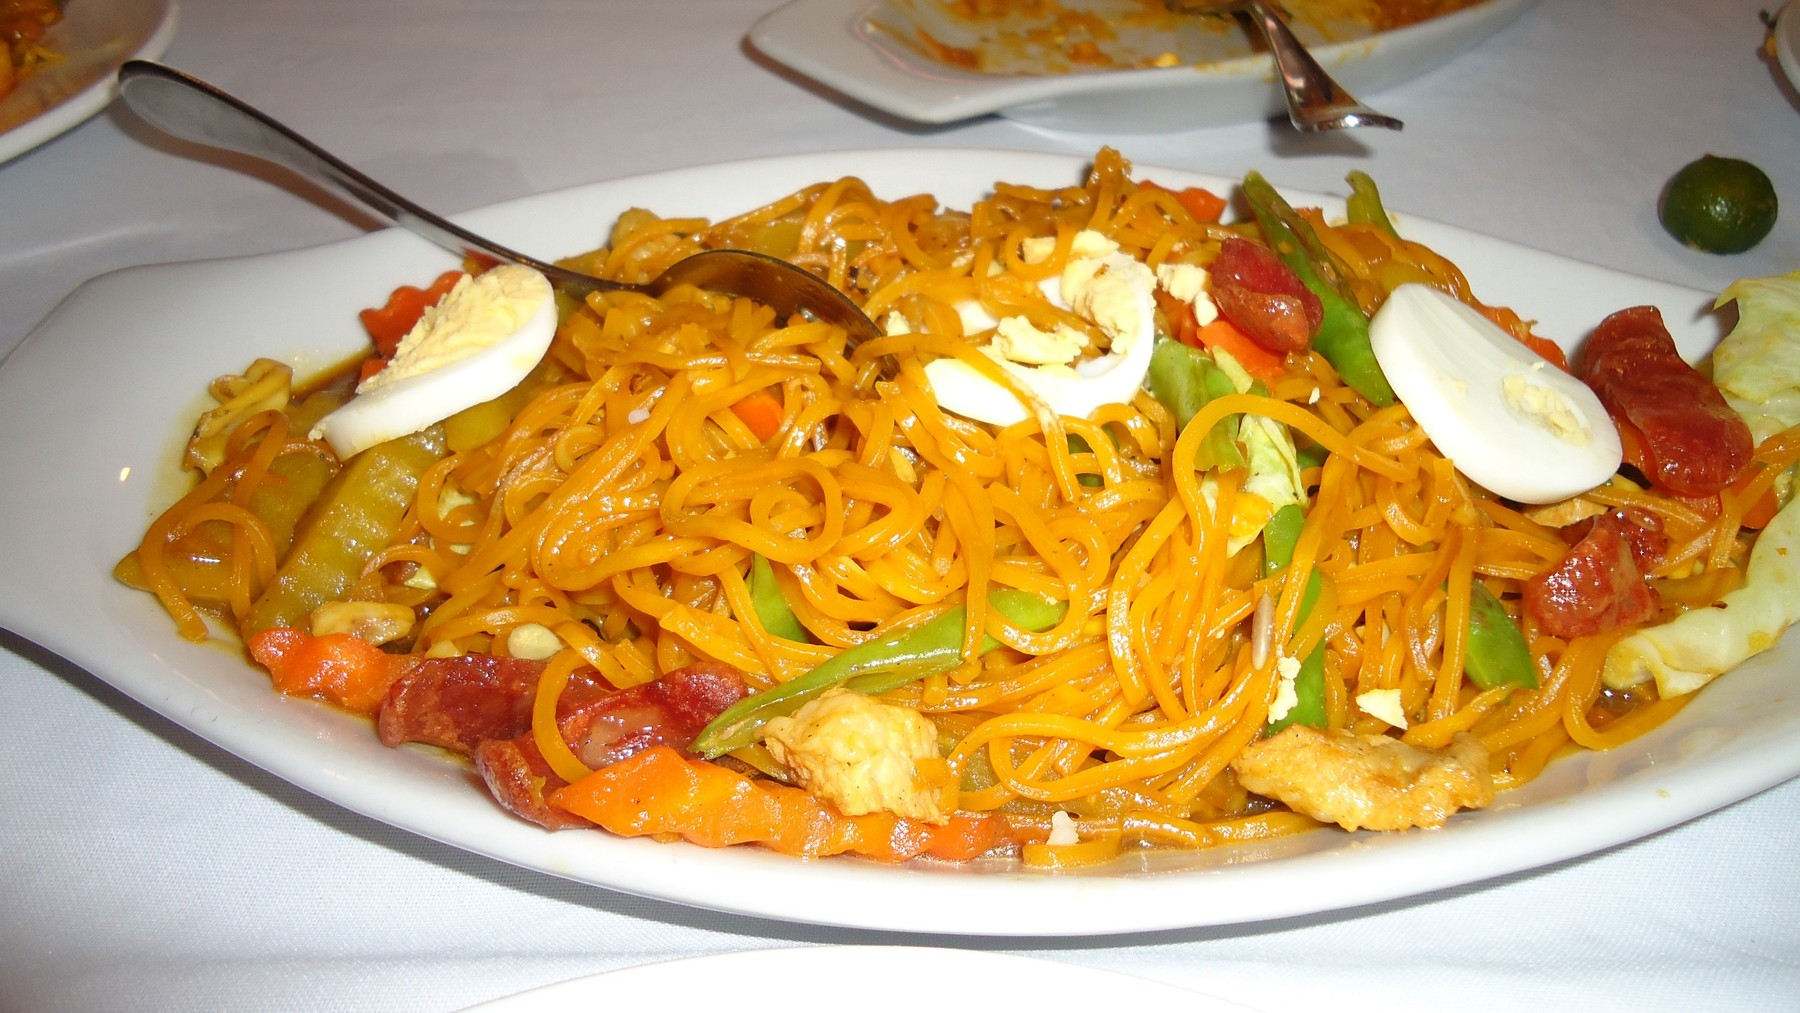 open source image of a plate of pancit